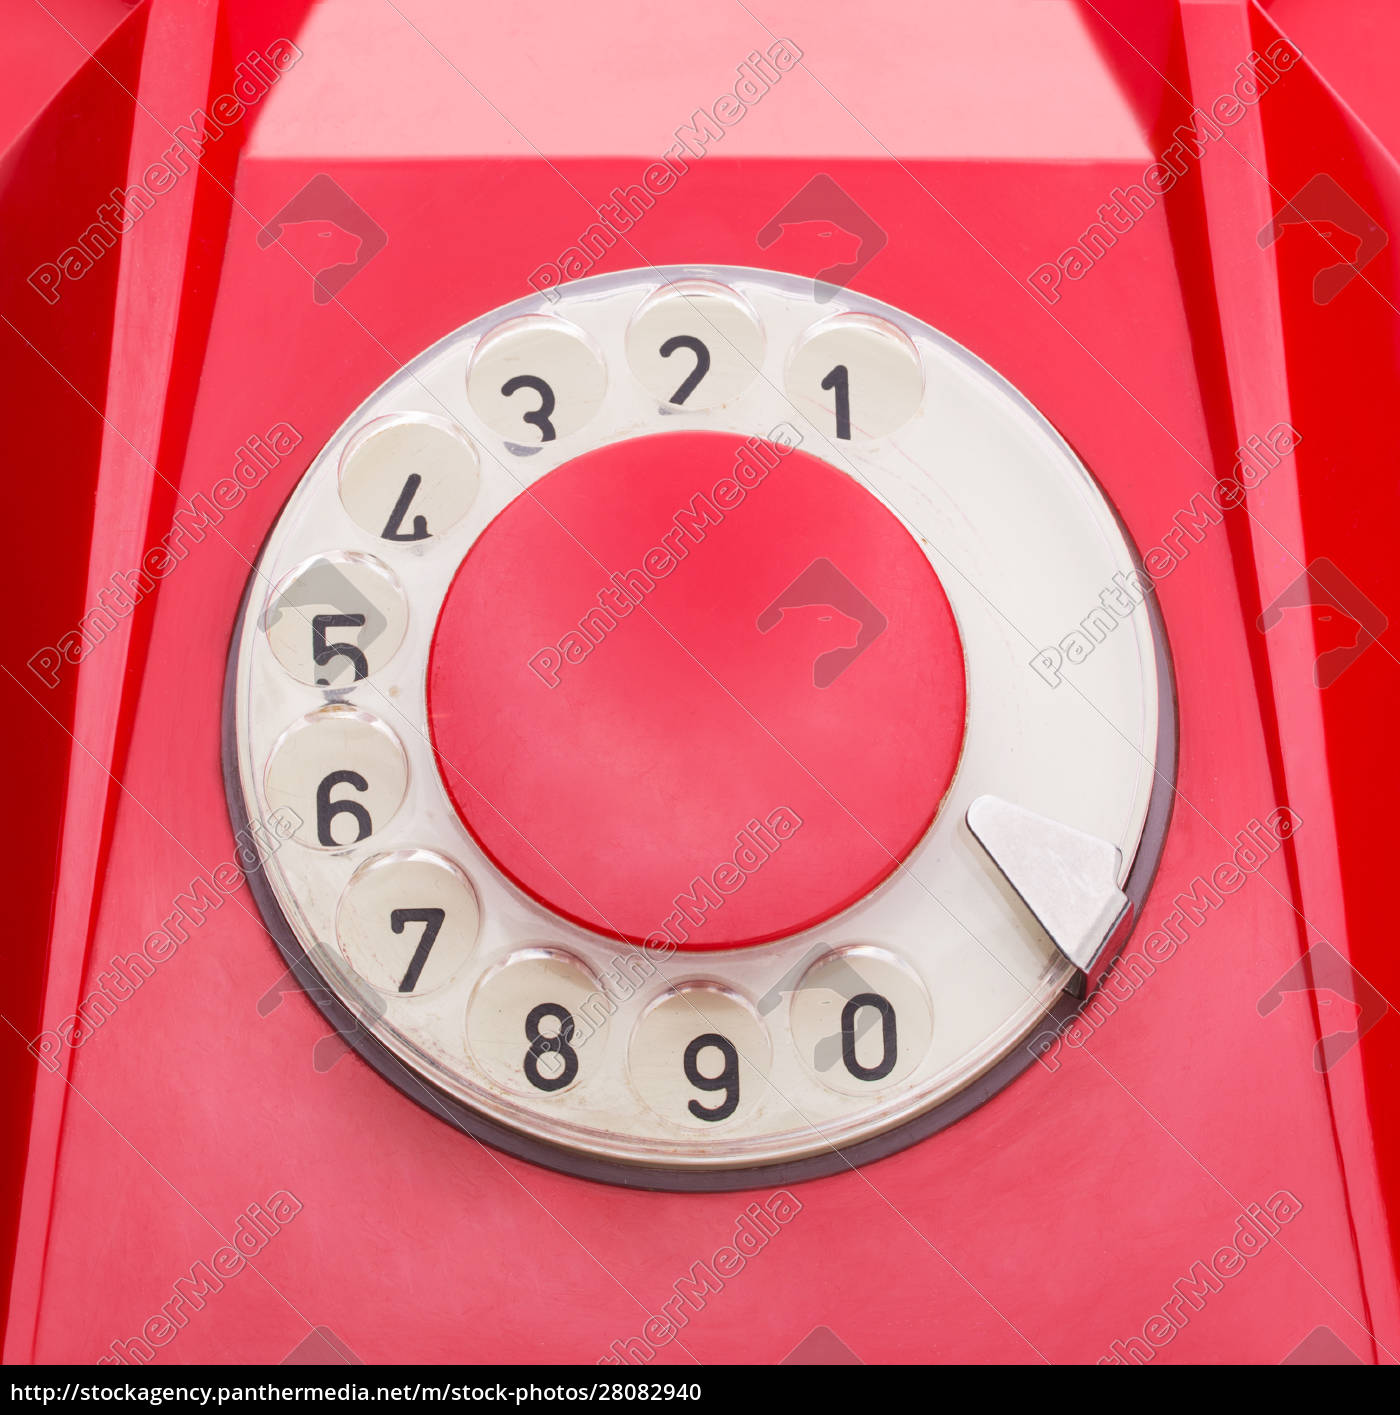 red, telephone - 28082940